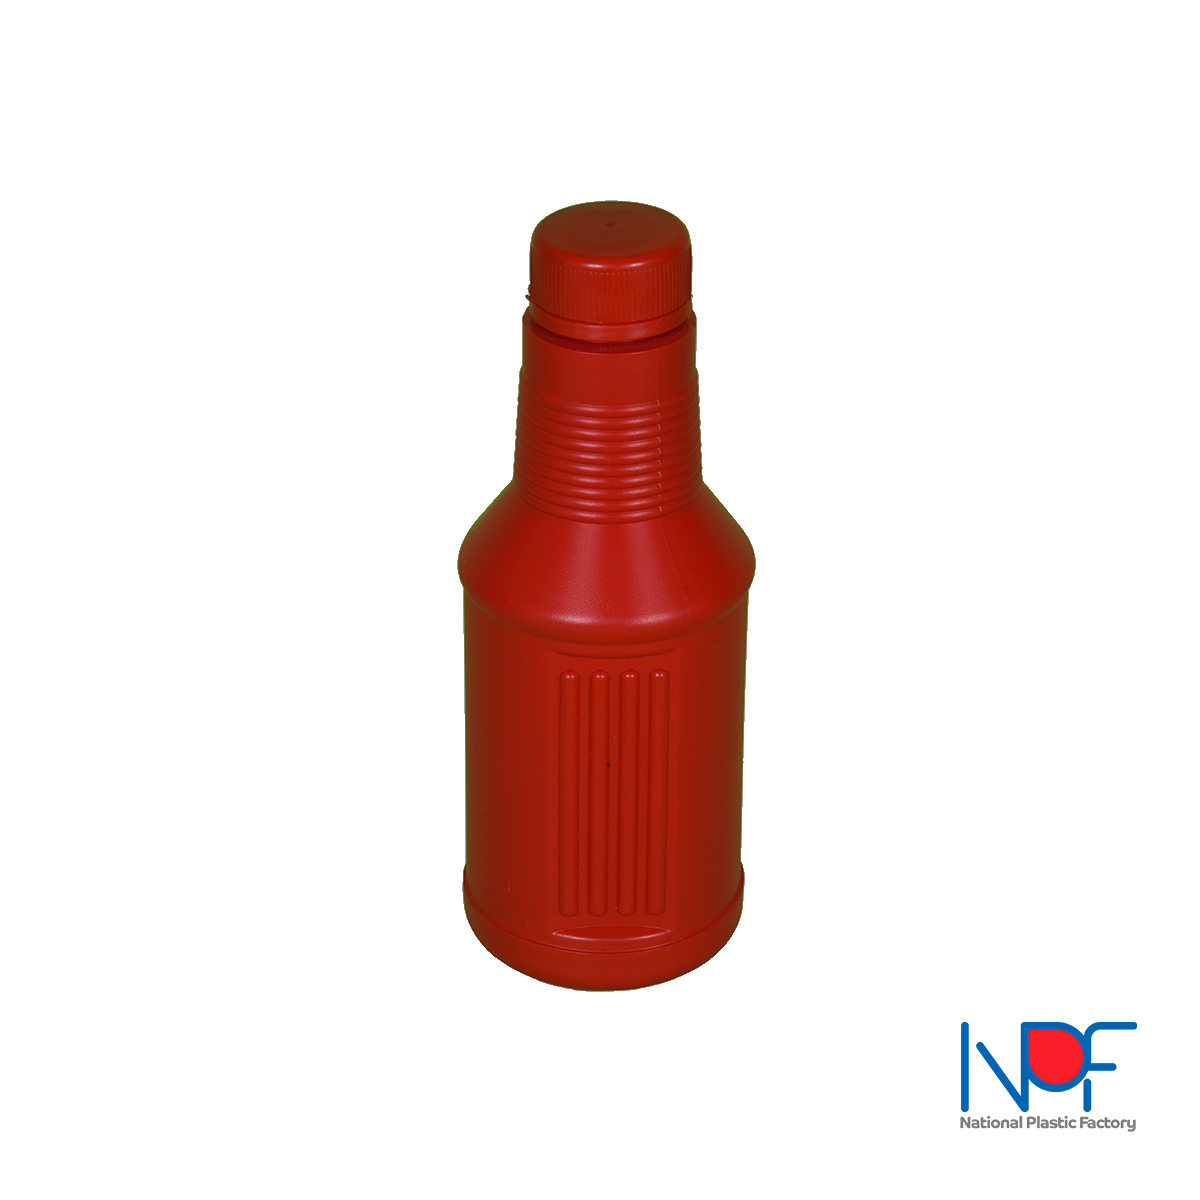 Motor Oil Bottle 0 5 Liter National Plastic Factory